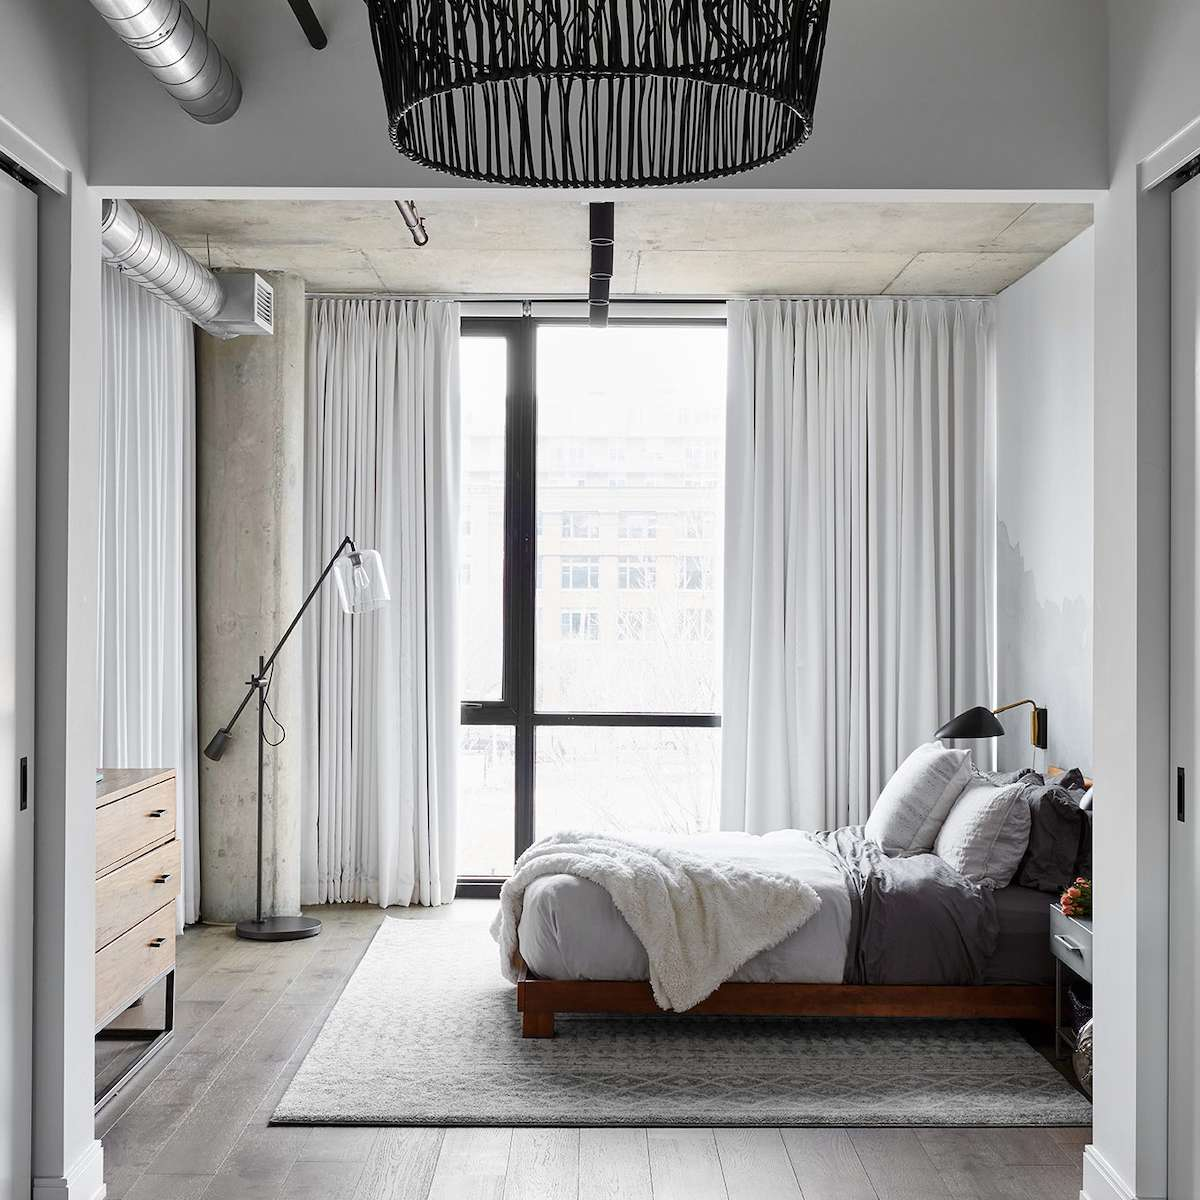 An industrial bedroom with a woven chandelier, a modern sconce, and an industrial floor lamp